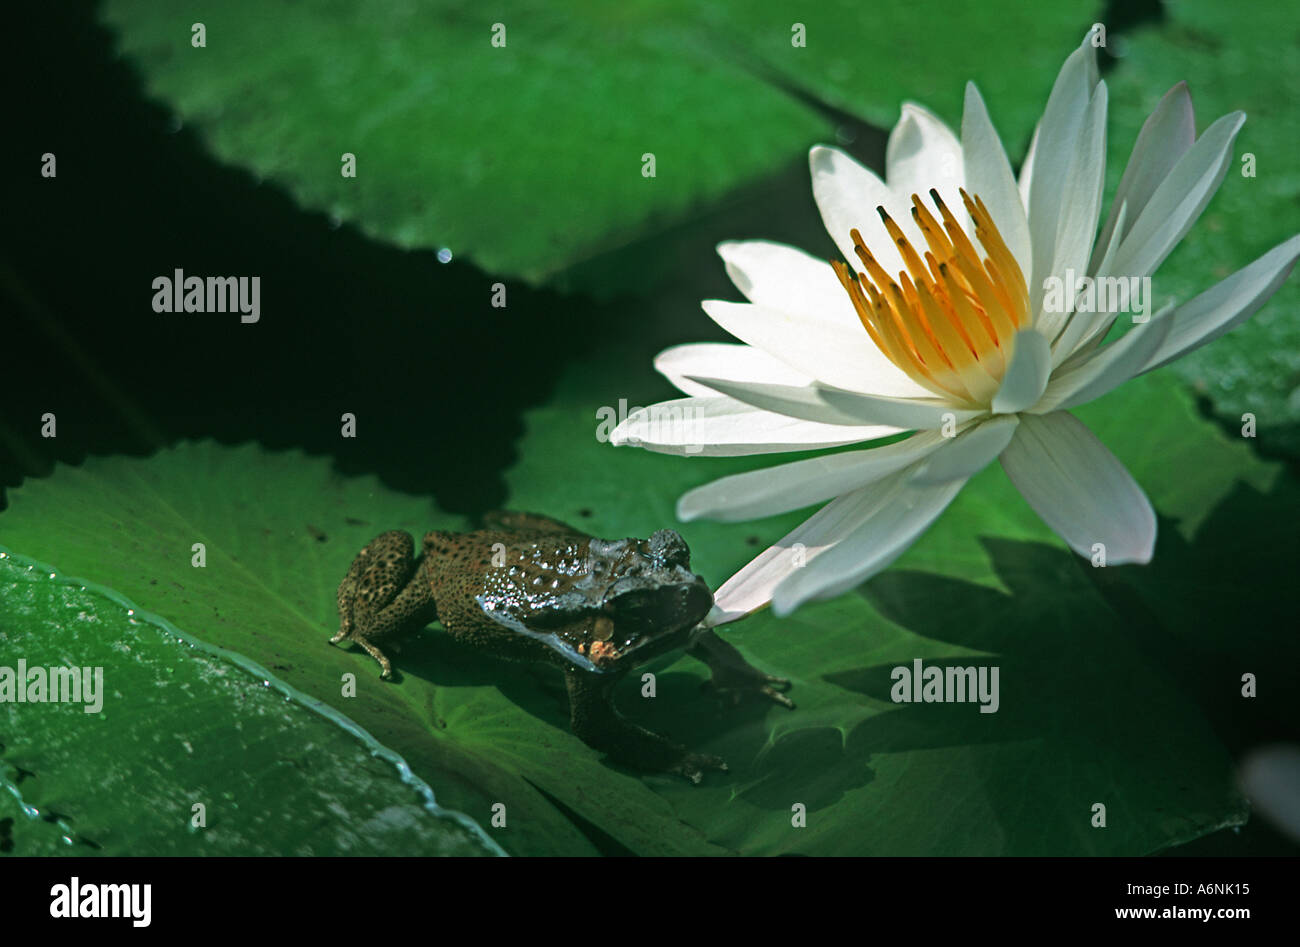 Frog perched on the leaves of a water lilly chewing on the petals of the flower Ubud Bali Indonesia - Stock Image